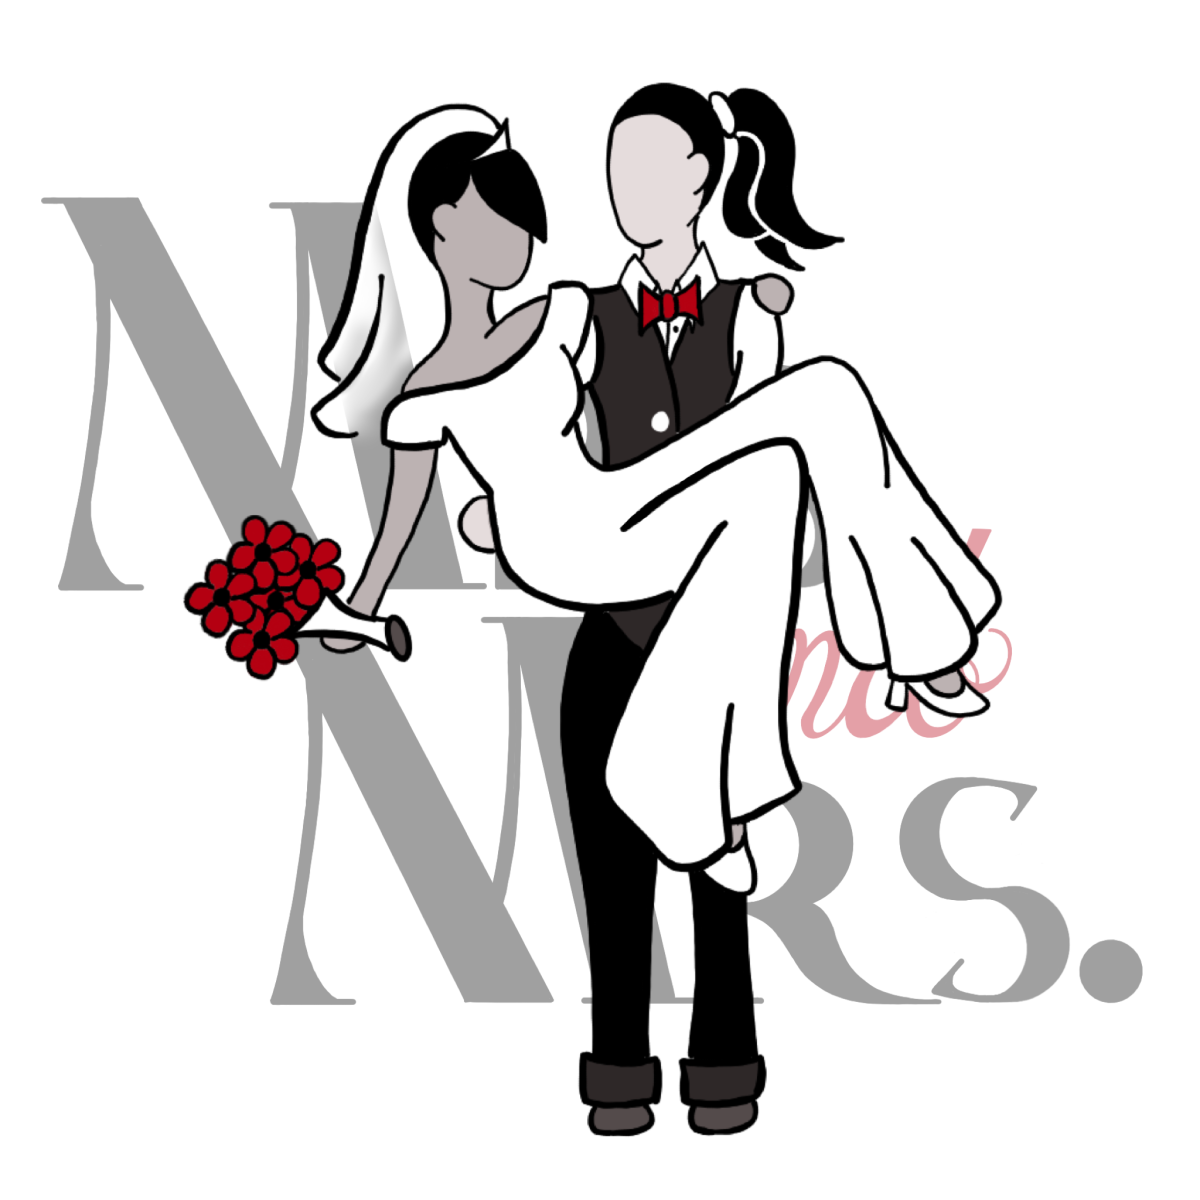 bride in vest and red bow tie carrying bride in white jumpsuit, and vail holding red flowers. behind them in faded black text reads Mrs. and Mrs. with white background